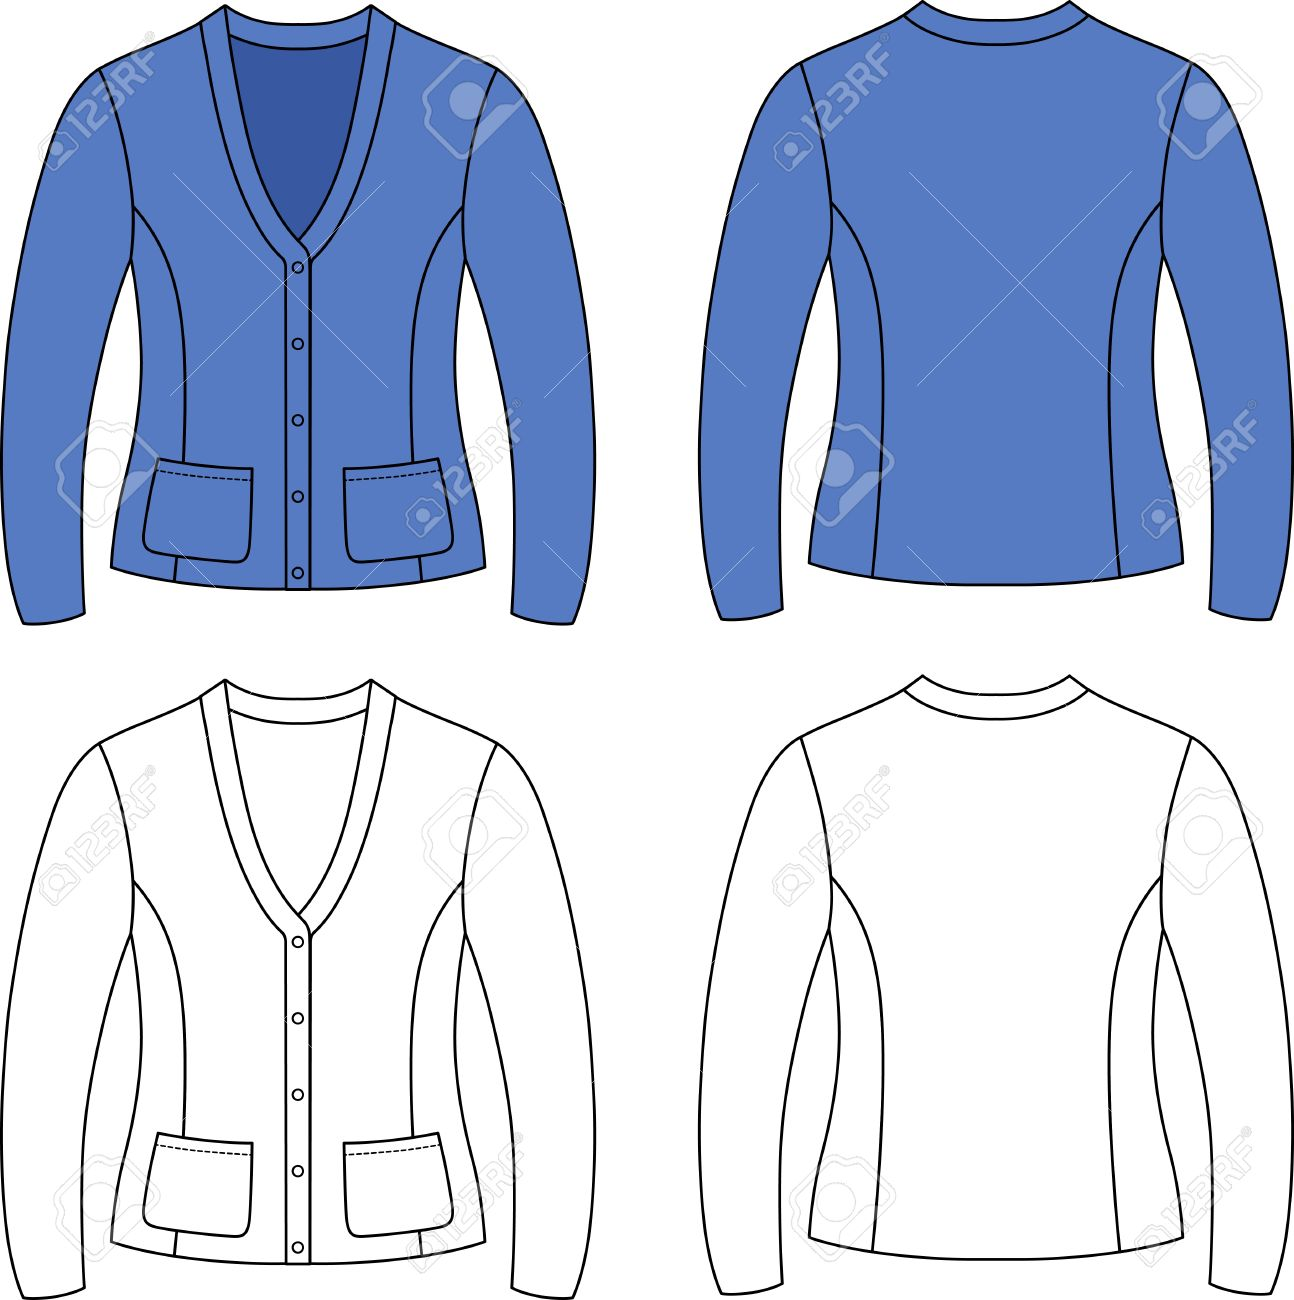 Blank Sweaters Cliparts | Free download best Blank Sweaters Cliparts ...